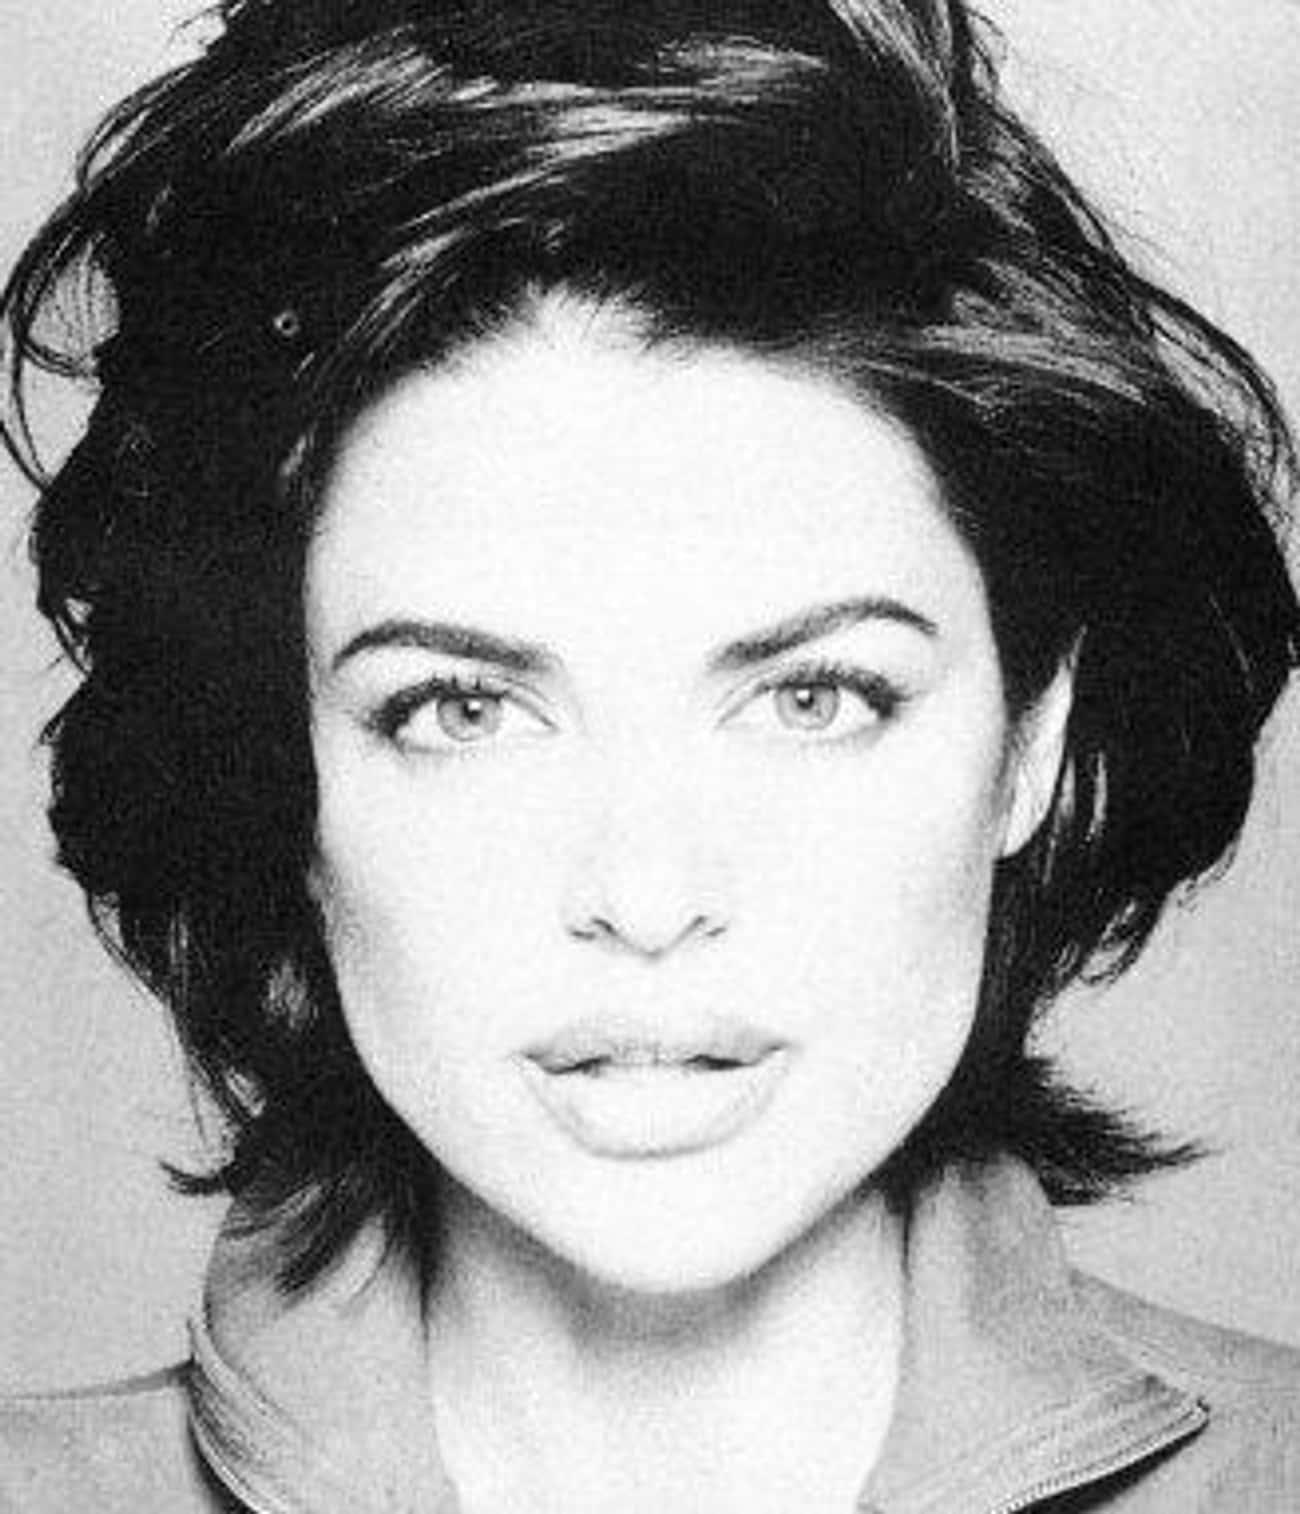 Young Lisa Rinna Black and Whi is listed (or ranked) 1 on the list 11 Pictures of Young Lisa Rinna